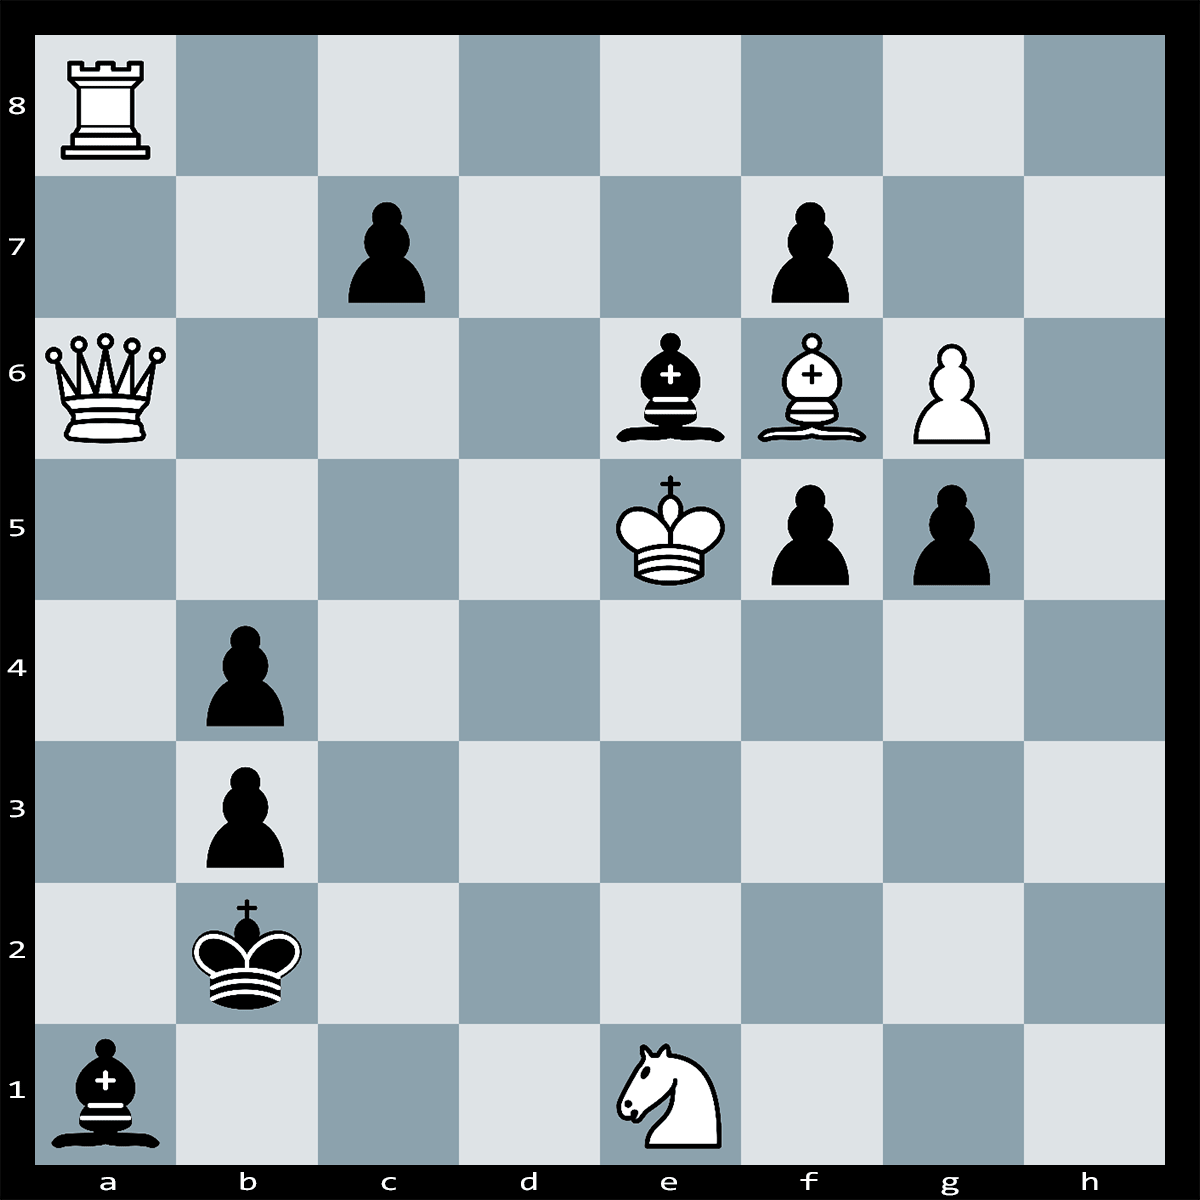 Chess Puzzle #280 | It's White to play and Checkmate in One, What is the winning move?